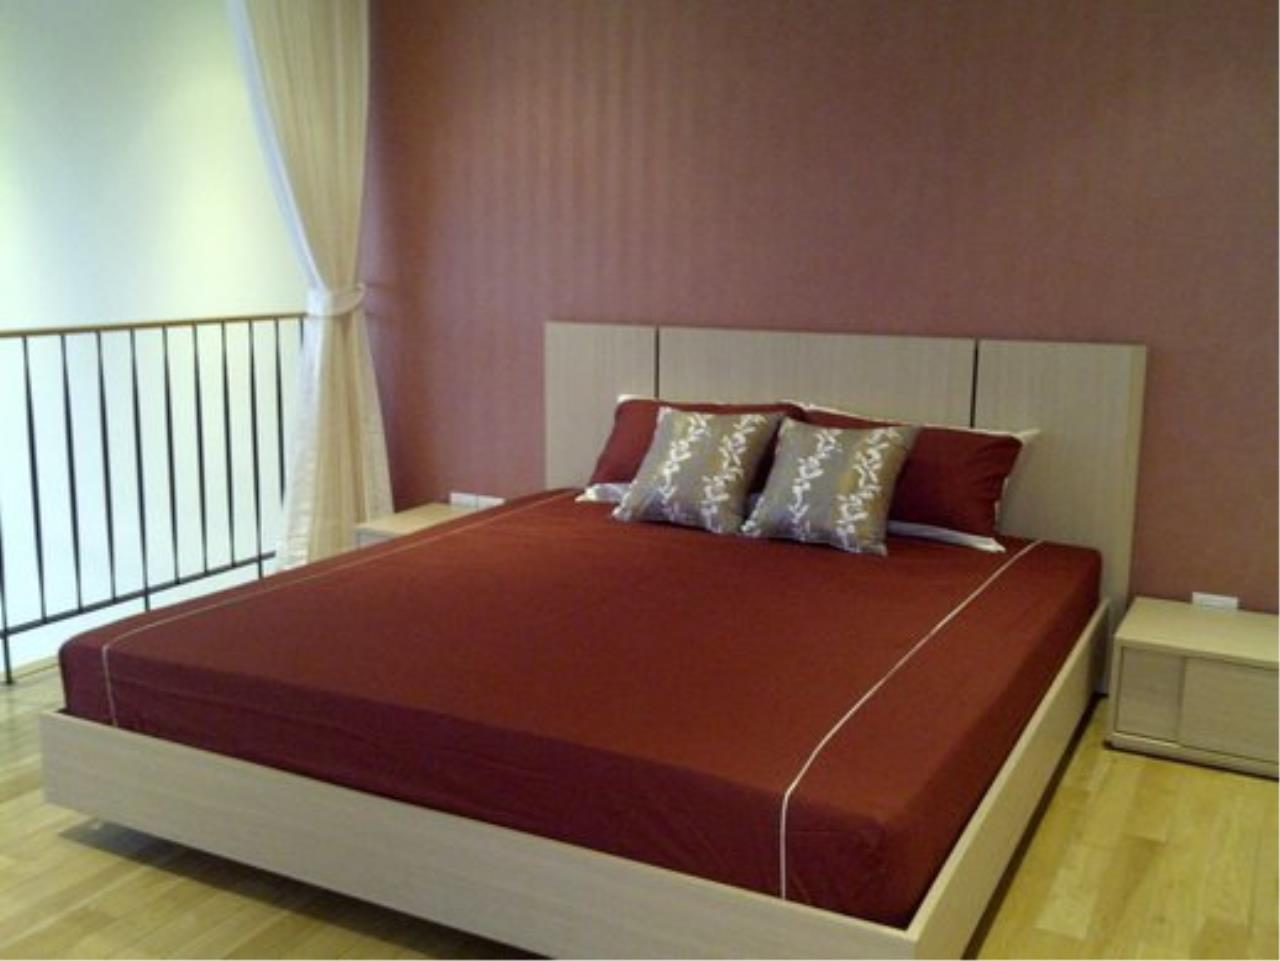 Piri Property Agency's Duplex 1 Bedroom Condo in the Emporio Place building for rent on high floor 10